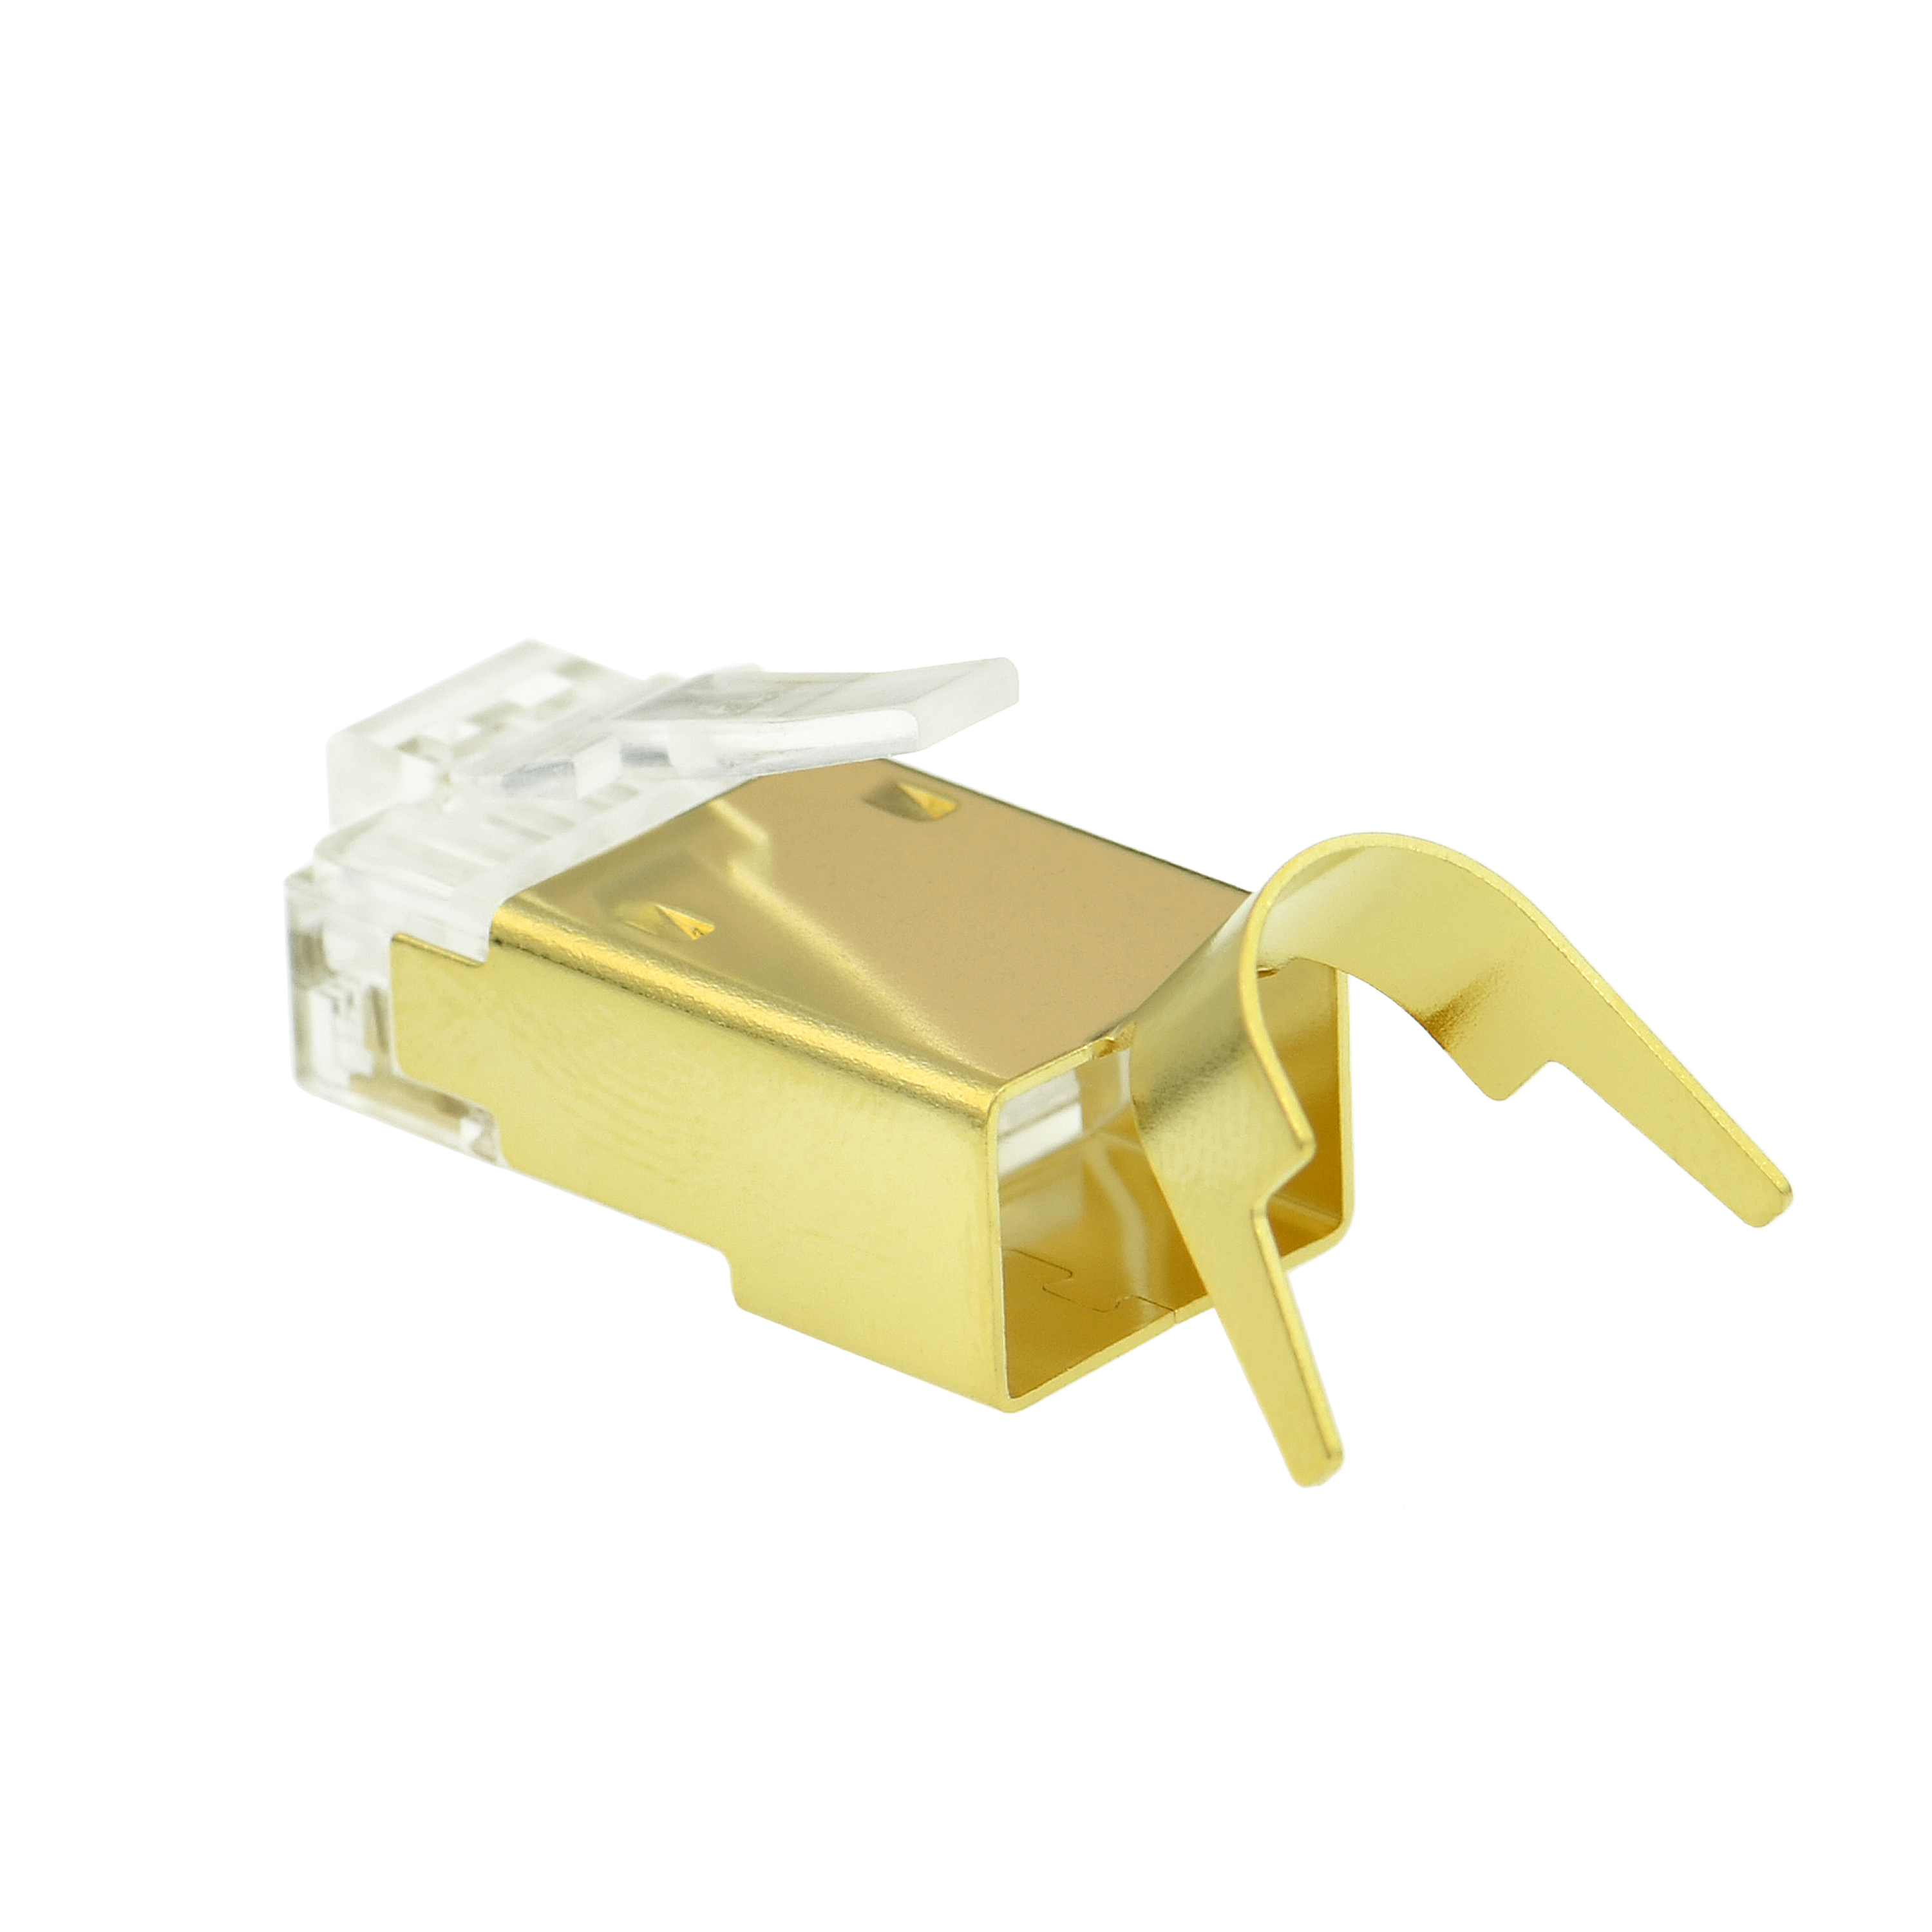 Shop New Cat7 Connector (Gold Shielded) - RJ45 Plug for Cat7 ...